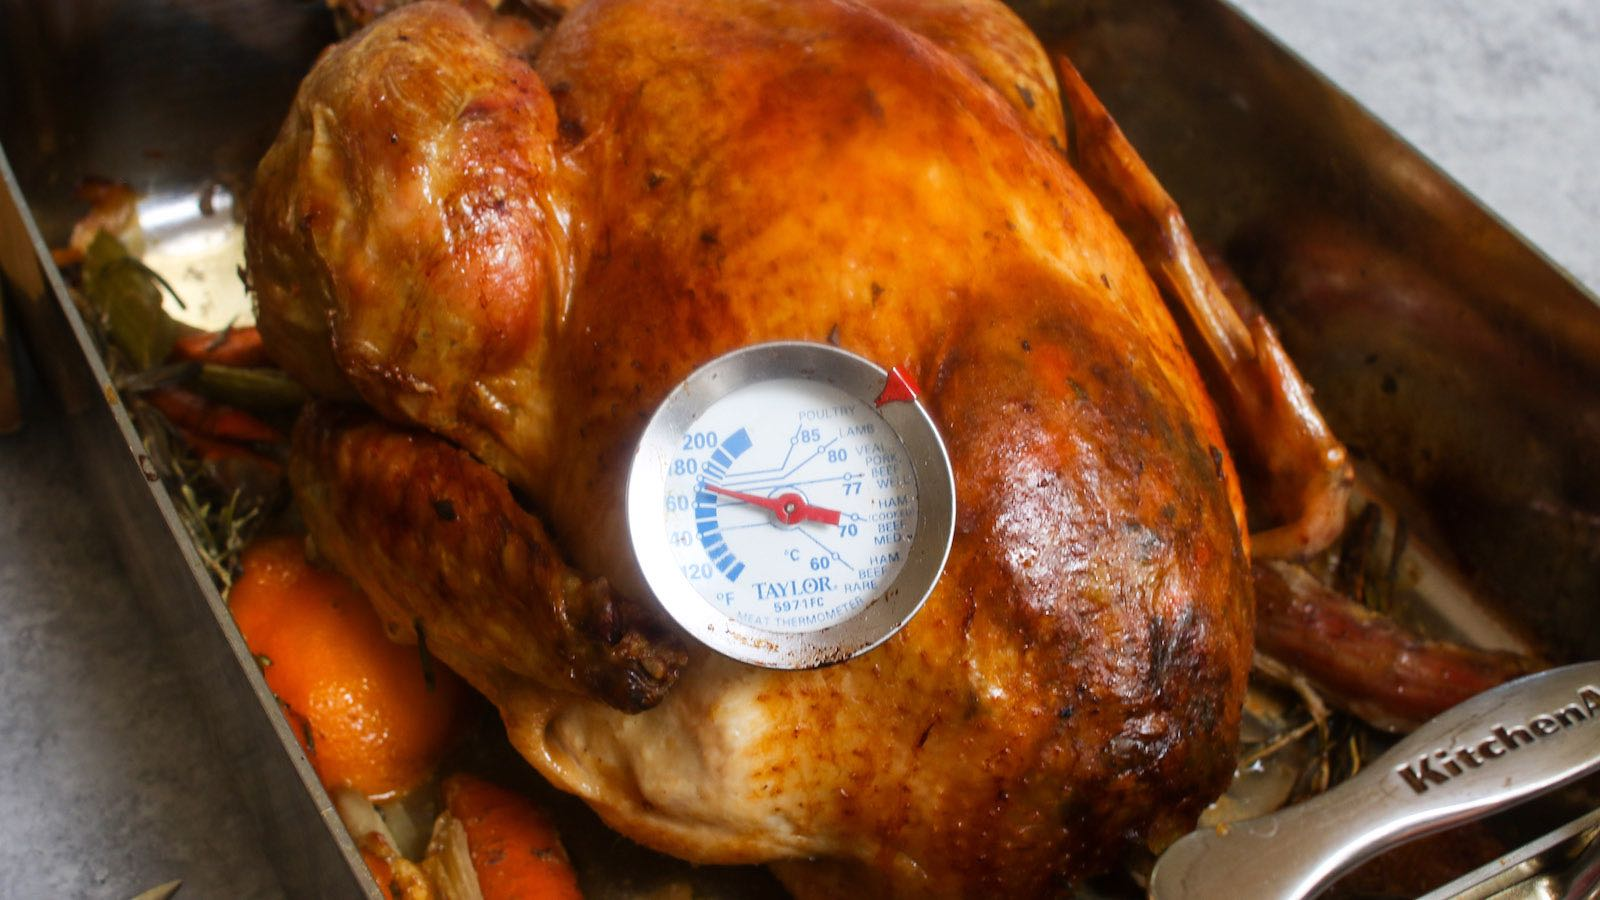 Meat thermometer inserted into a whole roast turkey reading 170 degrees F, indicating the turkey is done